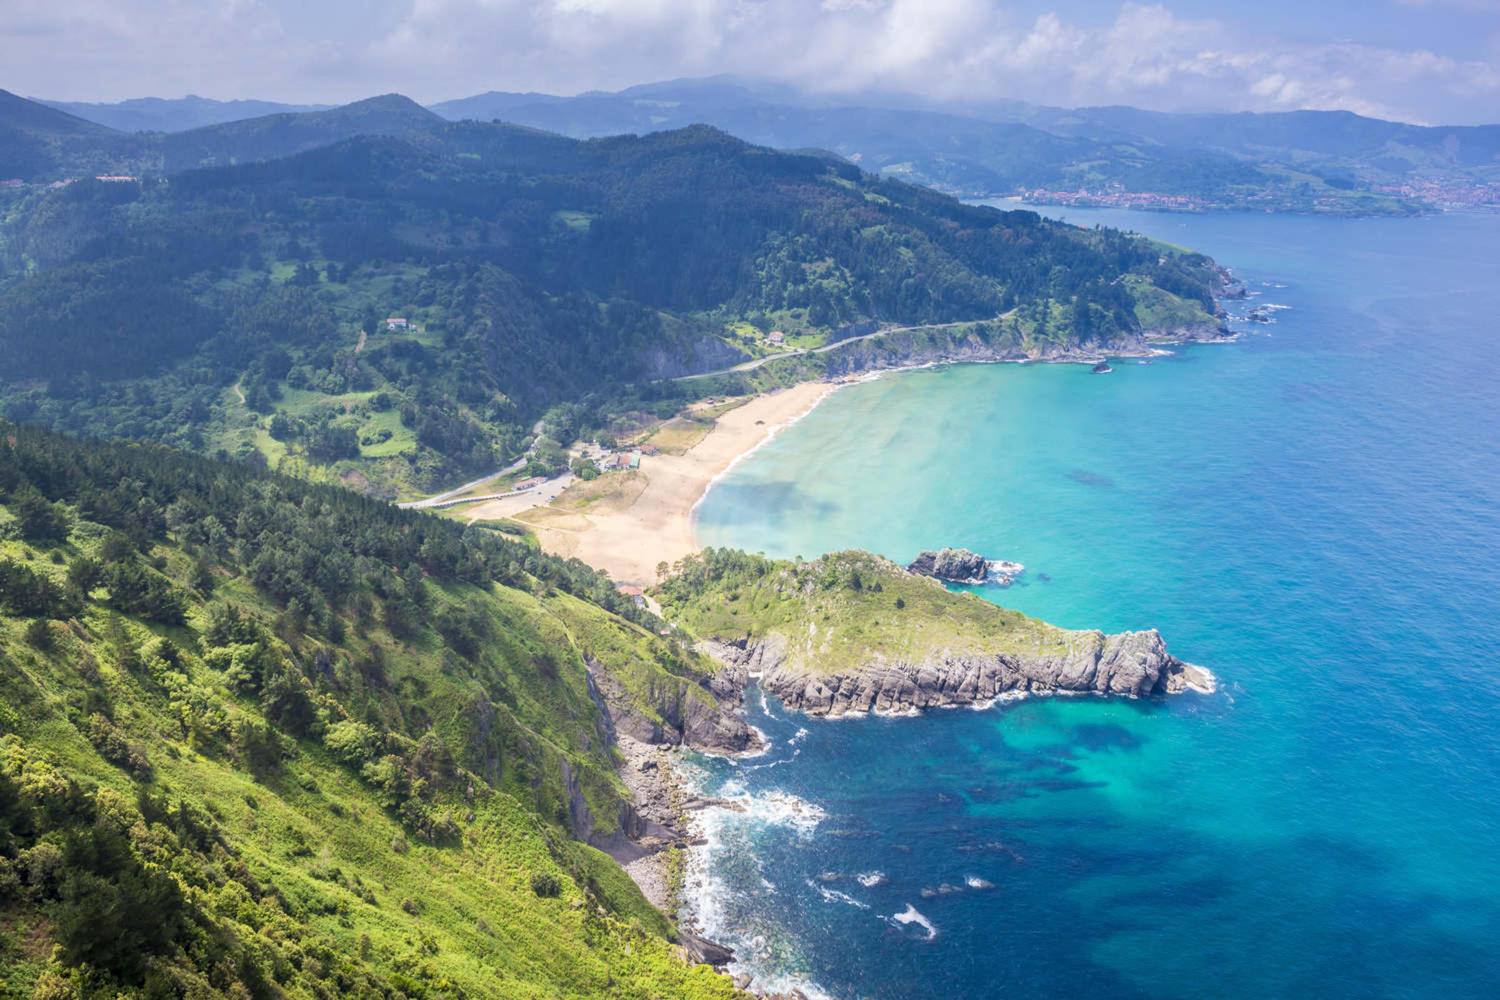 Panoramic view of Urdaibai and Cantabrian coast